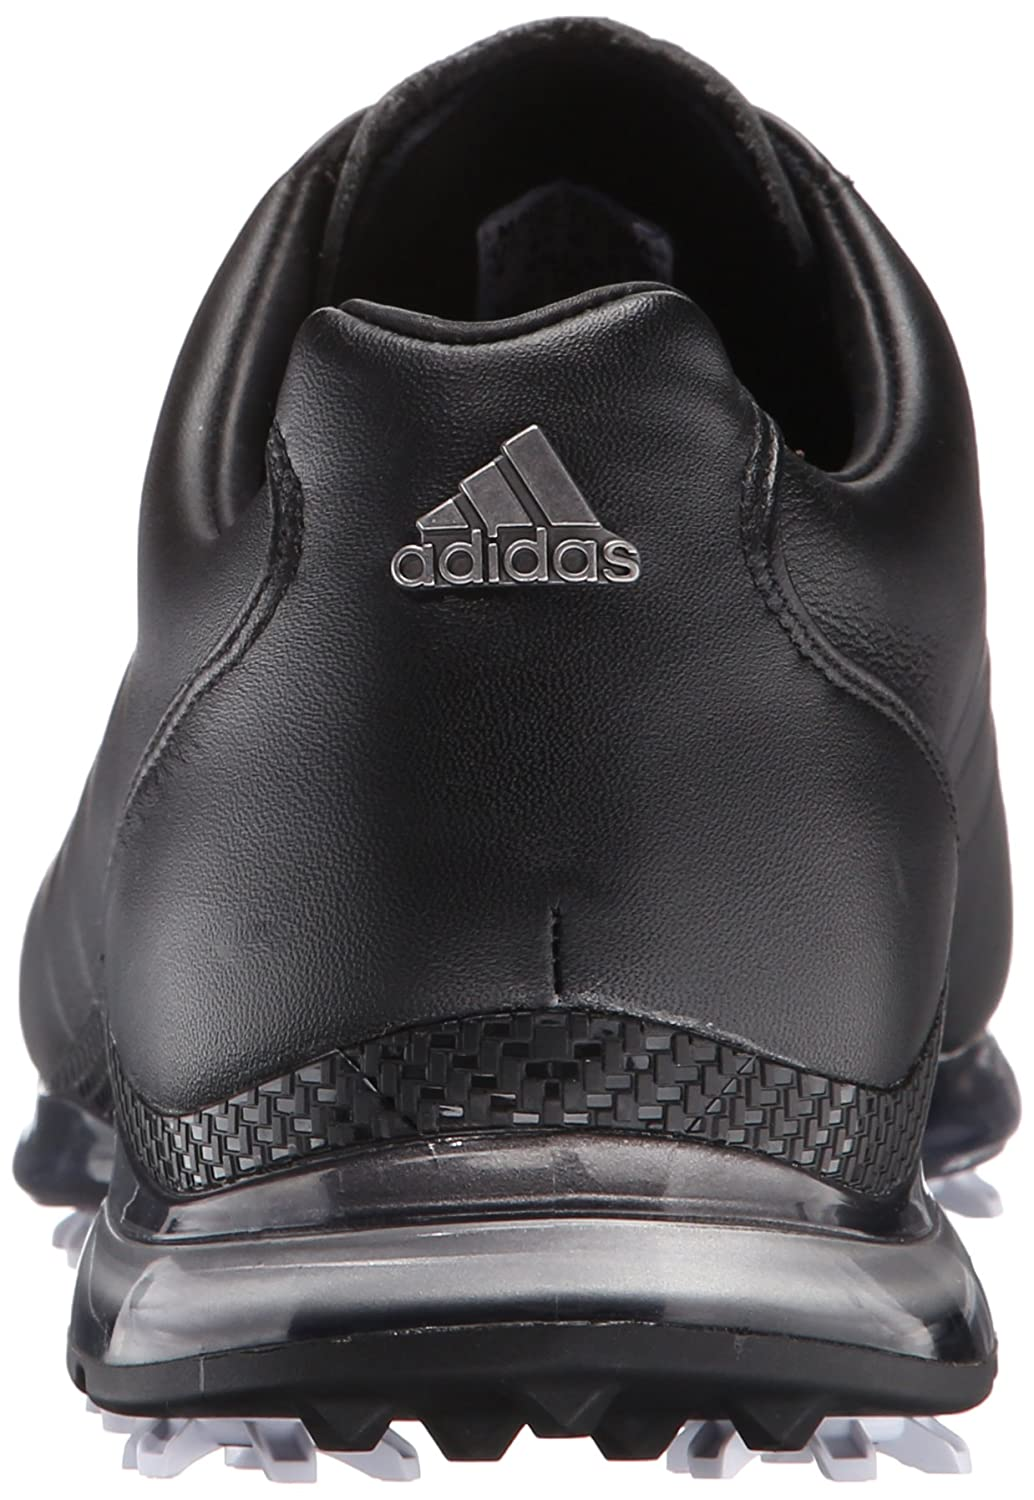 adidas Mens Adipure TP Golf Cleated